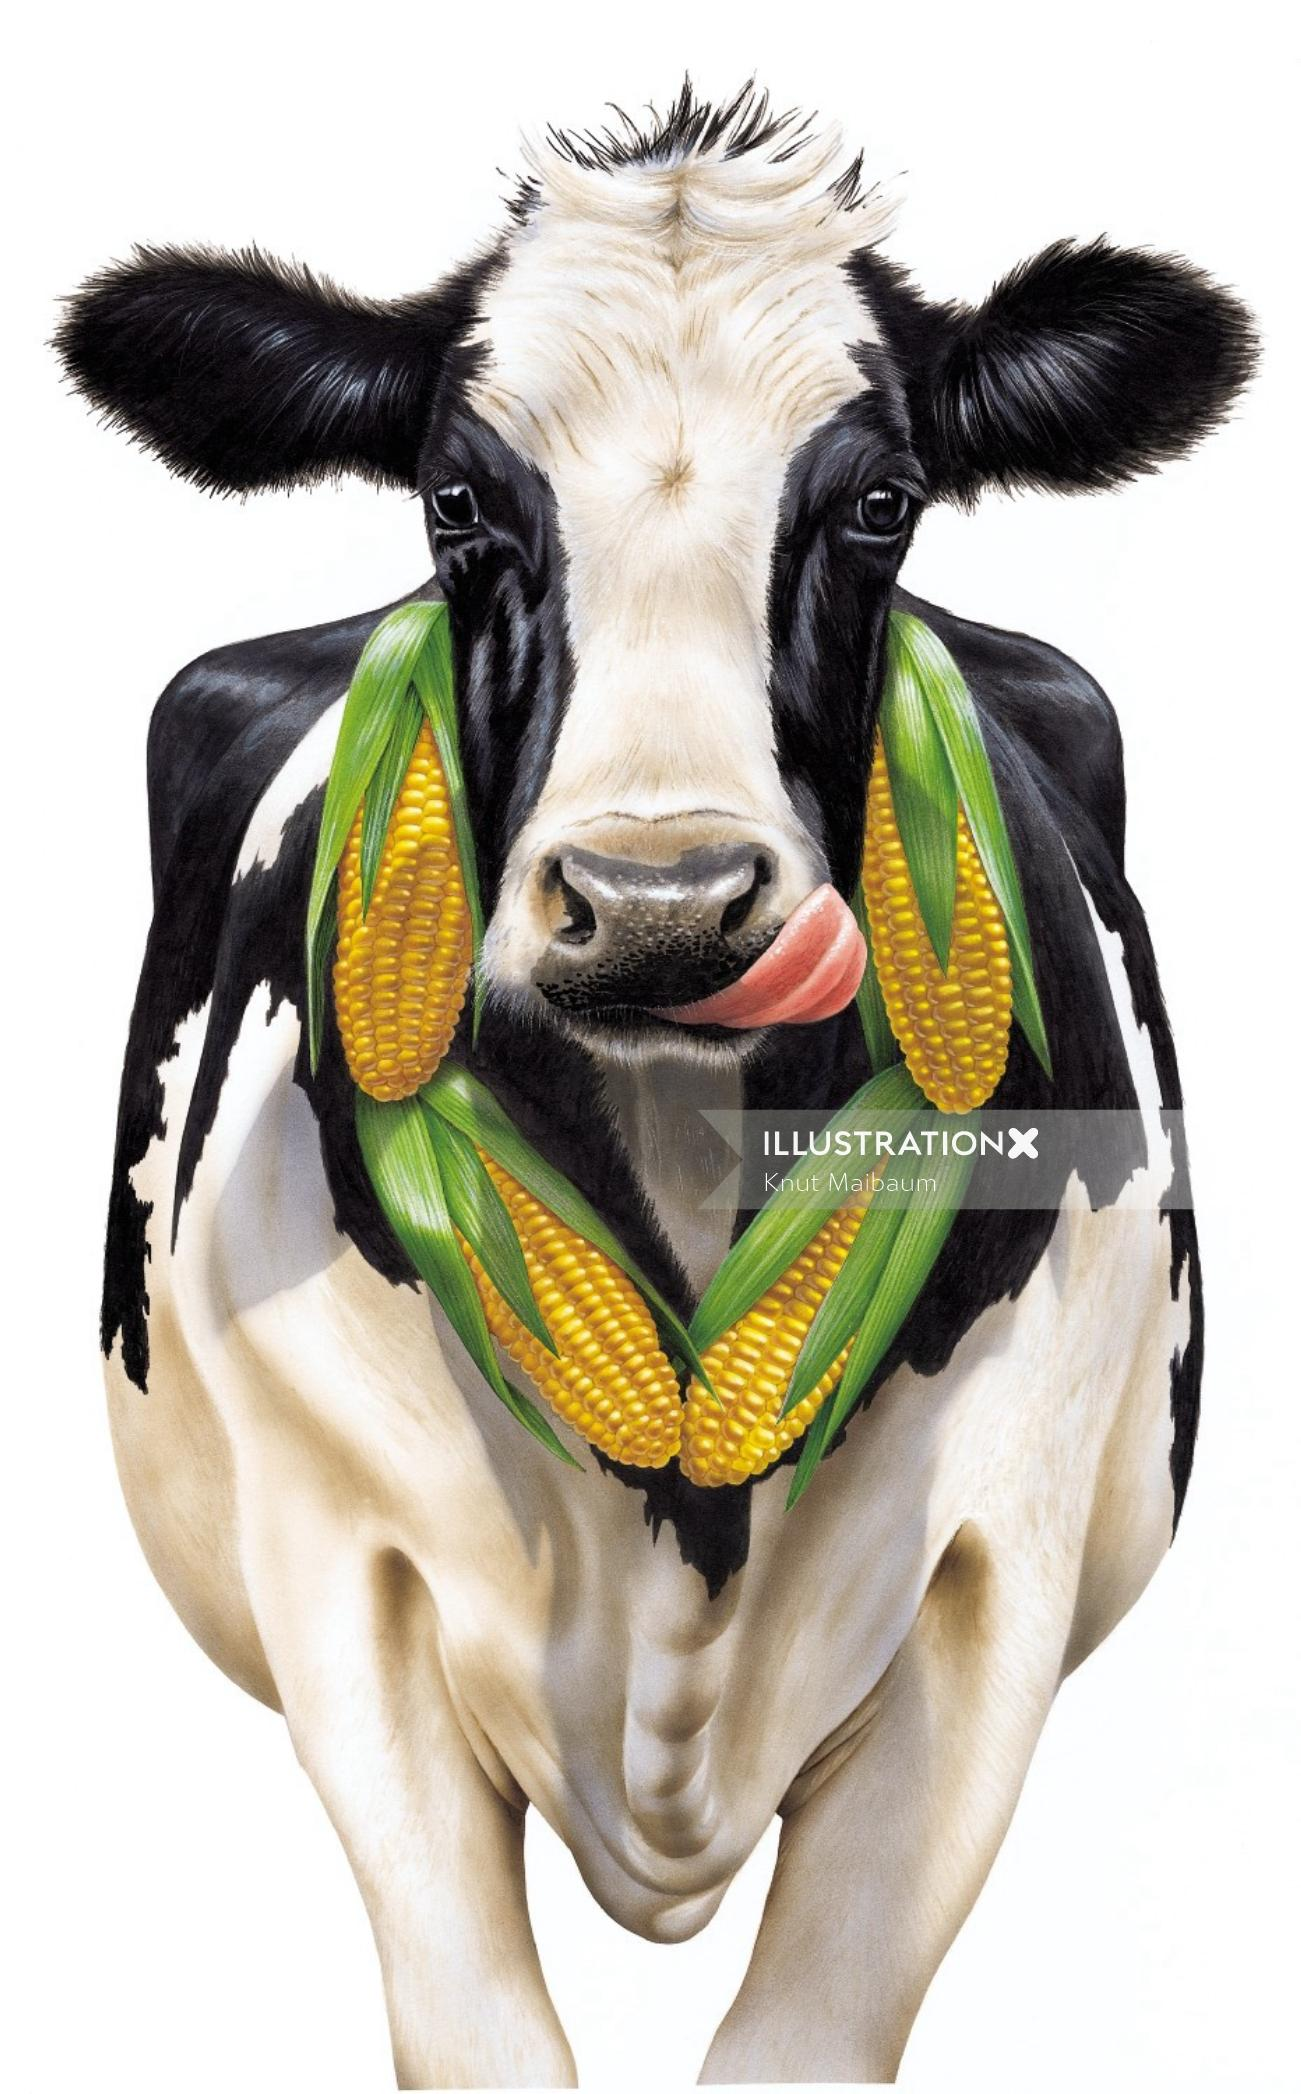 3d art of cow with corns